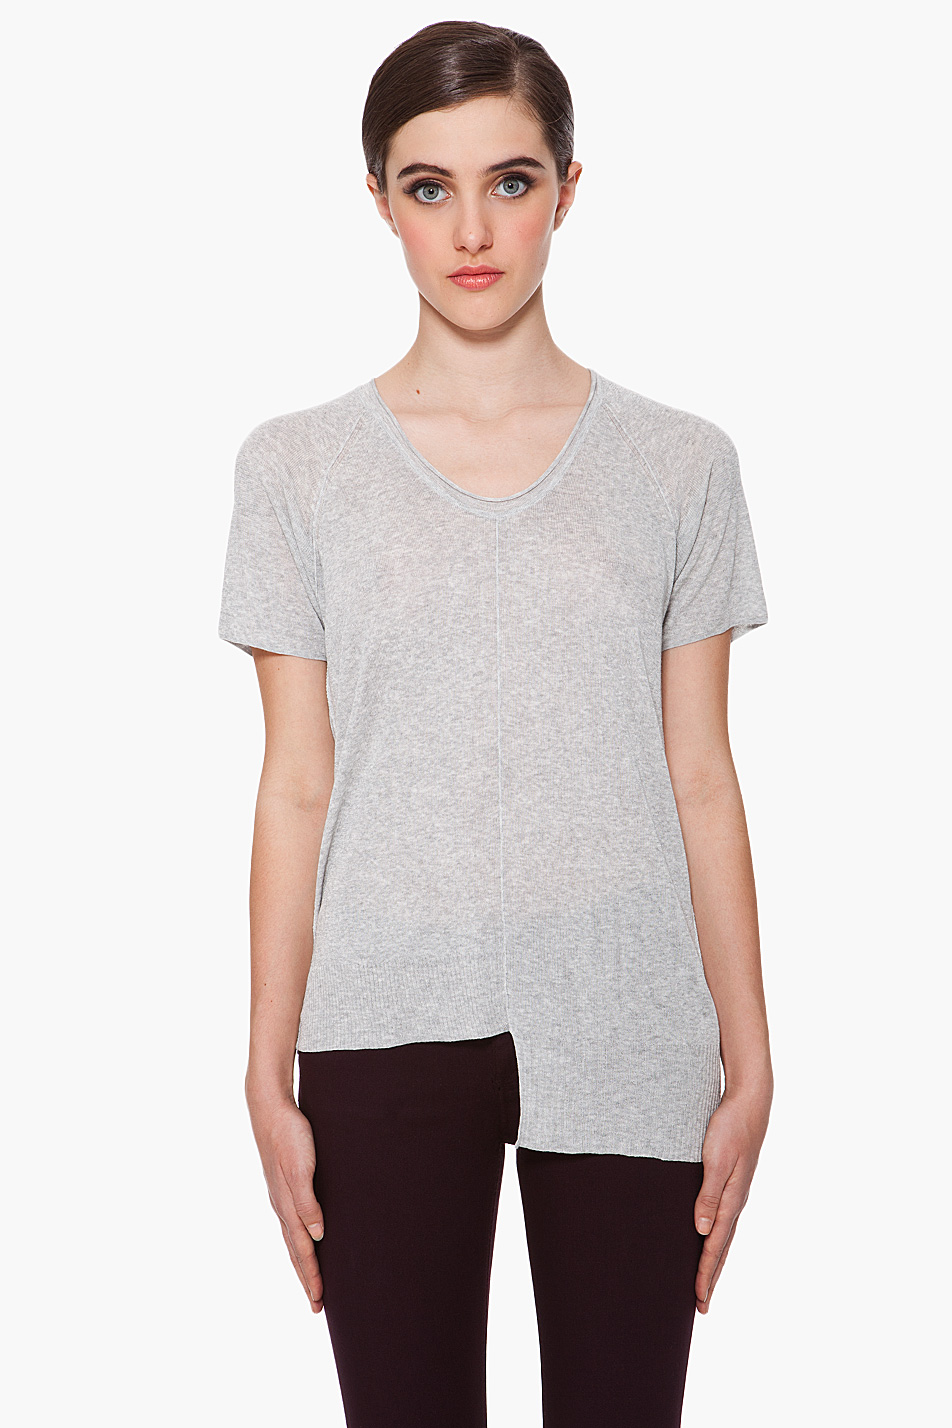 Lyst t by alexander wang rib knit t shirt in gray for Alexander wang t shirts